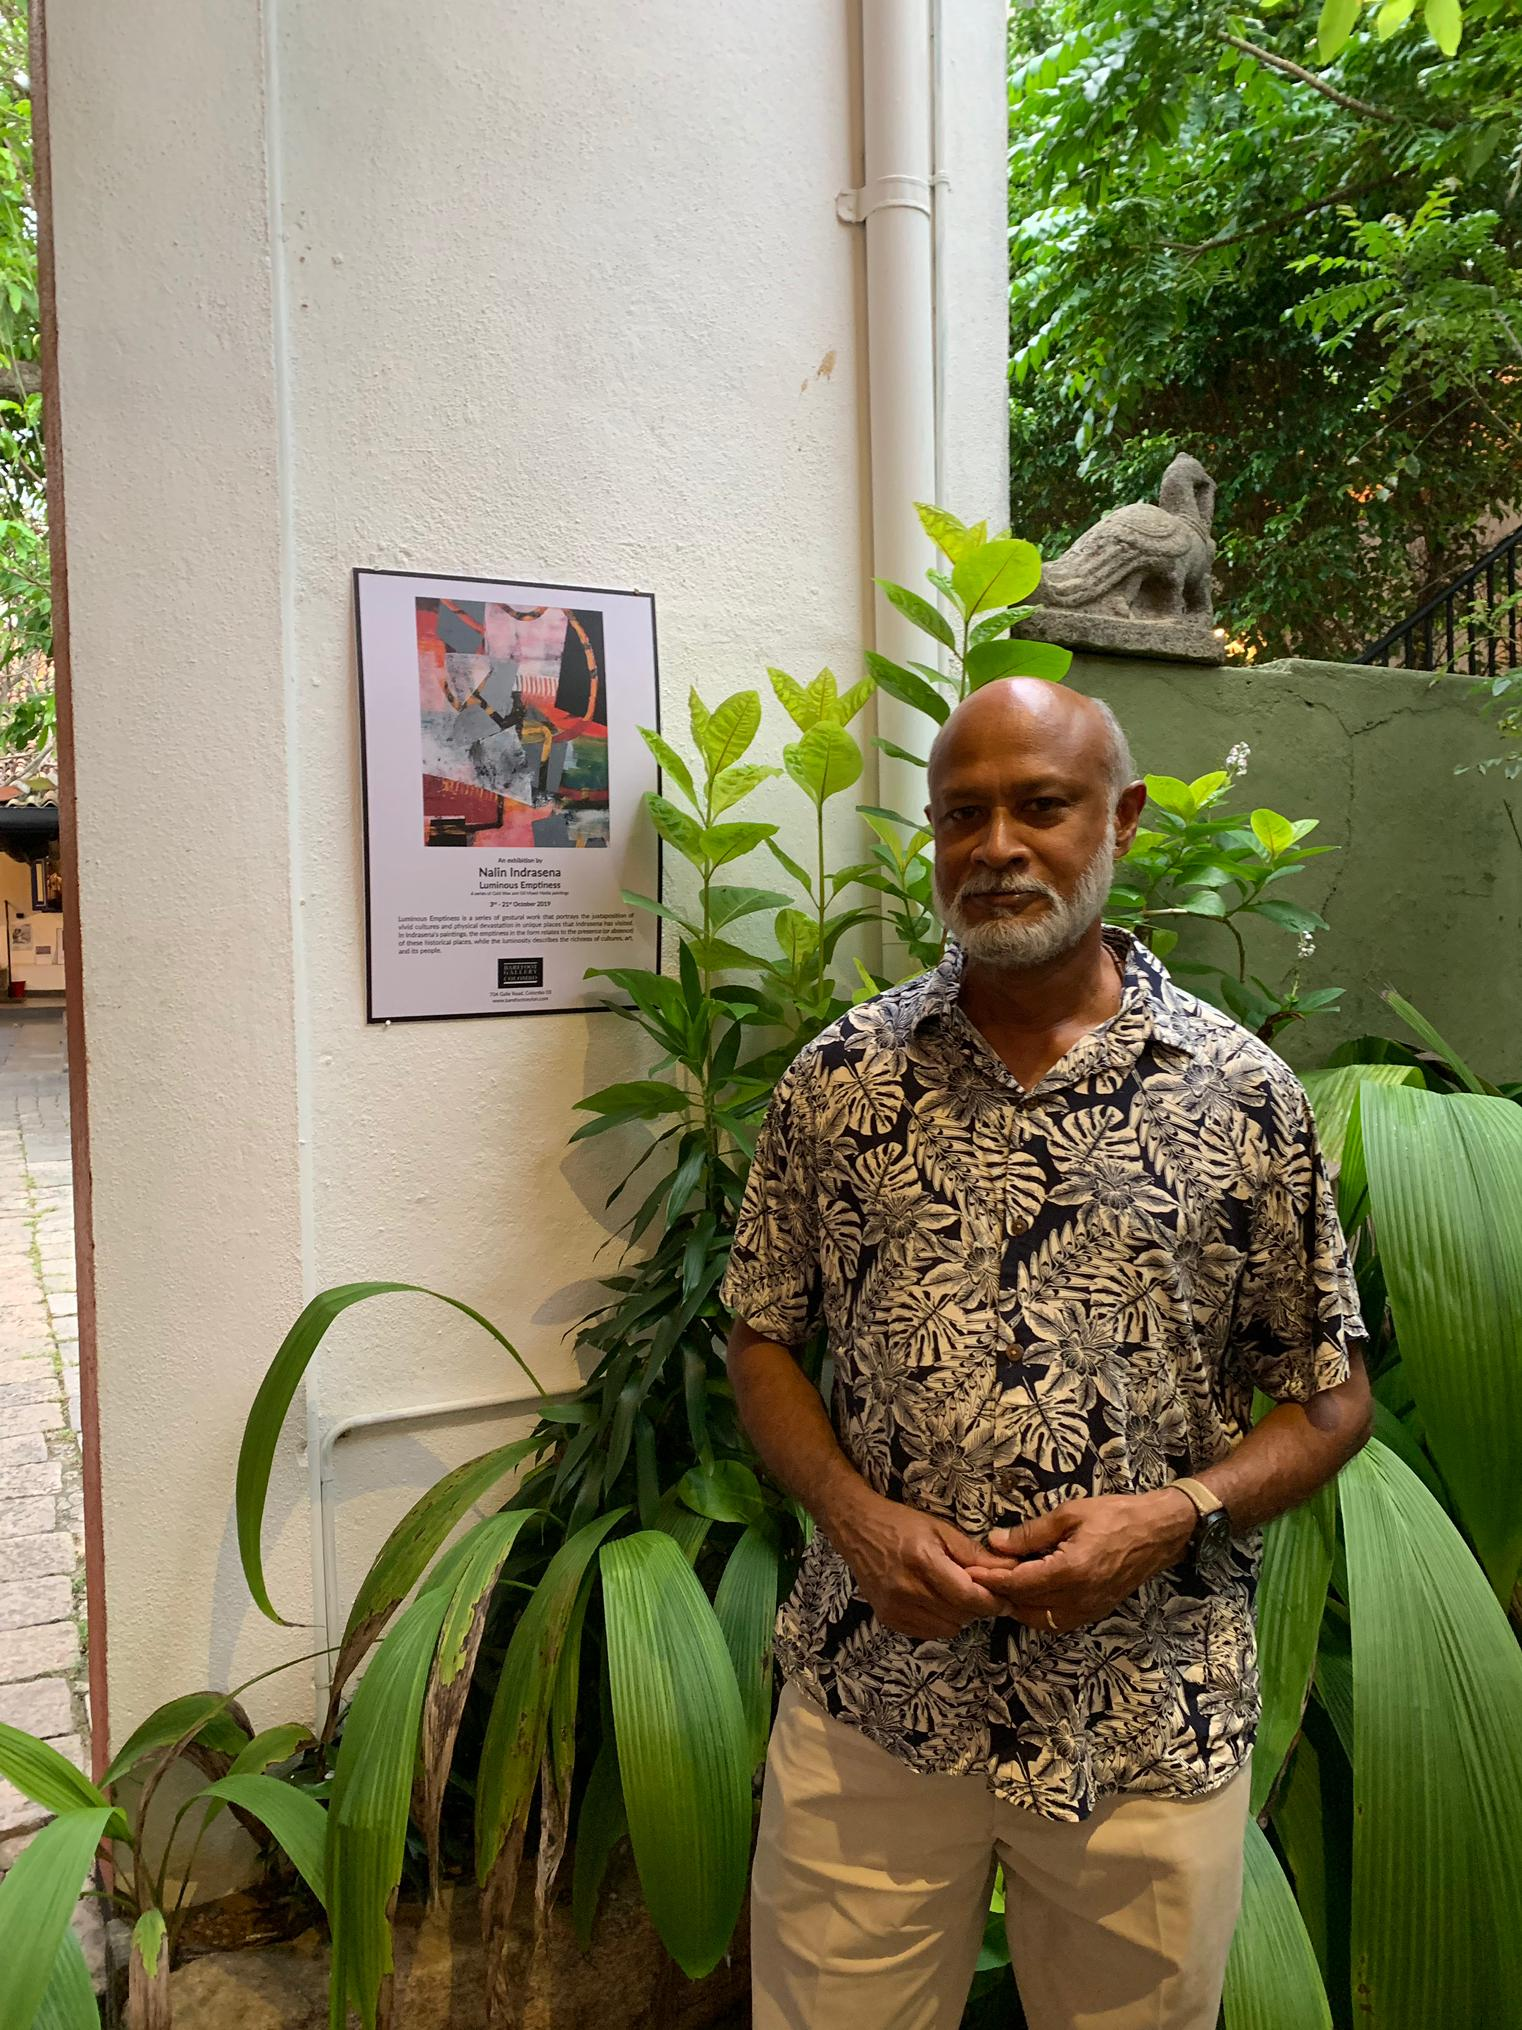 nalin at the entrance of the barfoot gallery with poster